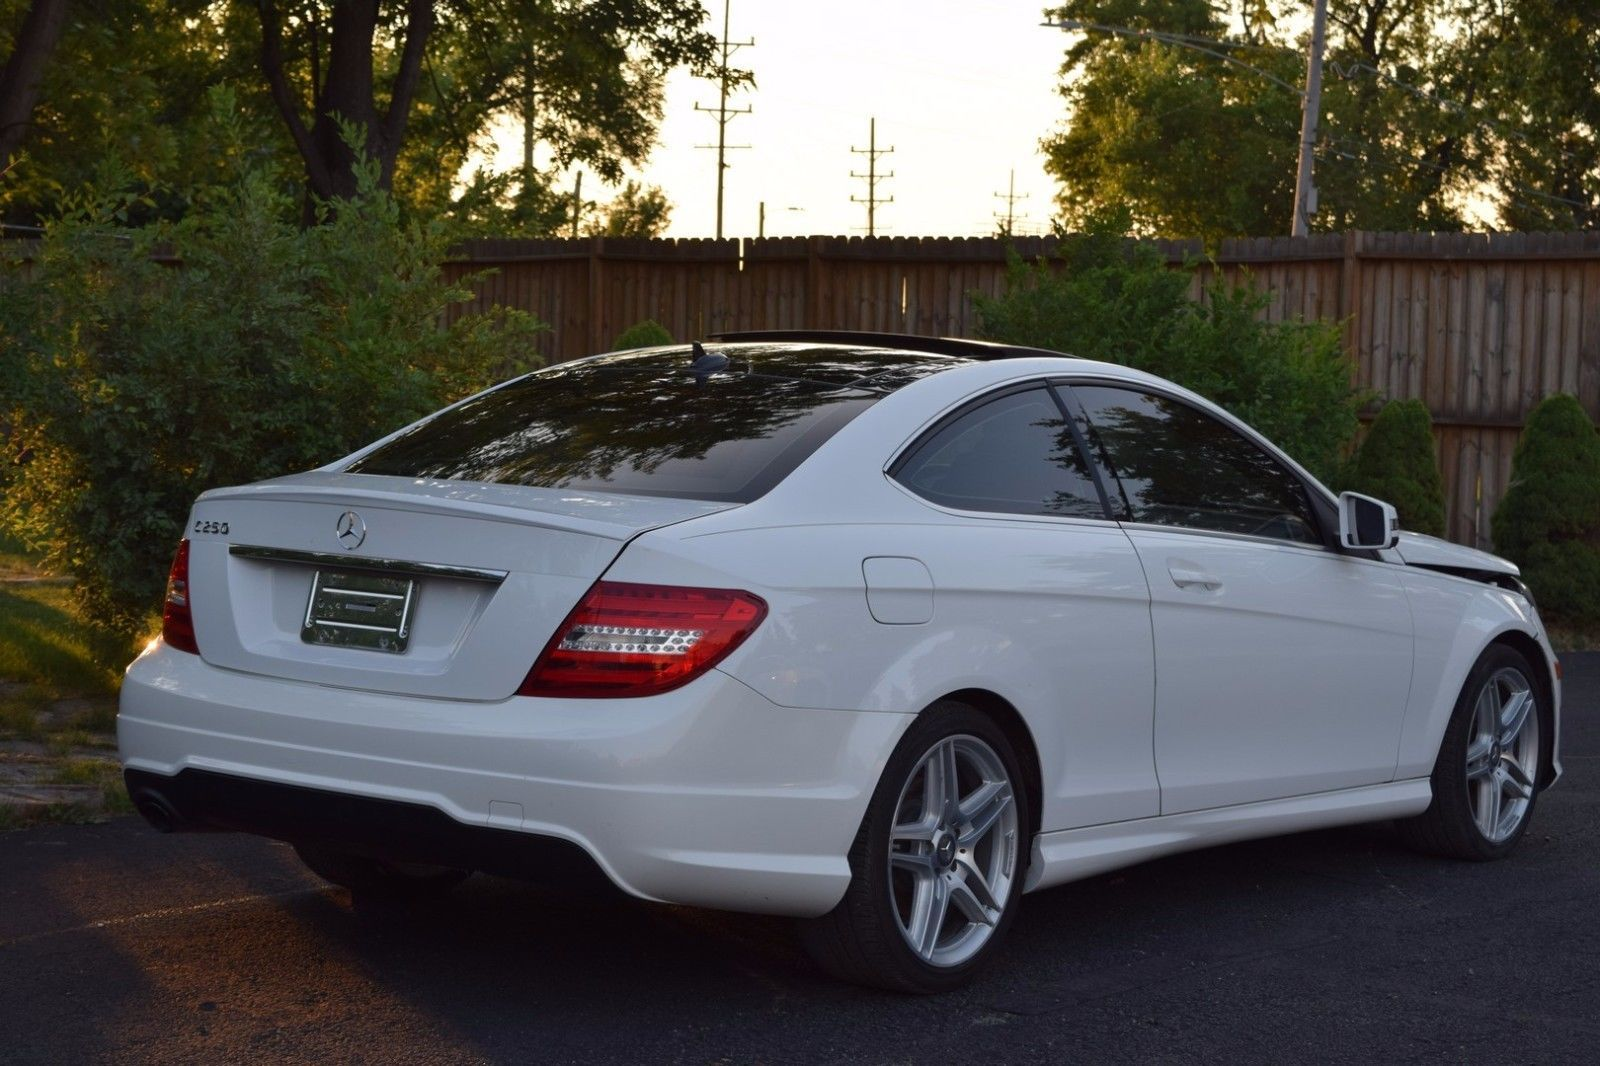 Ebay 2013 Mercedes Benz C Class Base Coupe 2 Door 2013 Mercedes C250 Coupe Loaded Low Miles Damaged Rebuildable Carparts Carrepai Mercedes Benz Benz C Benz